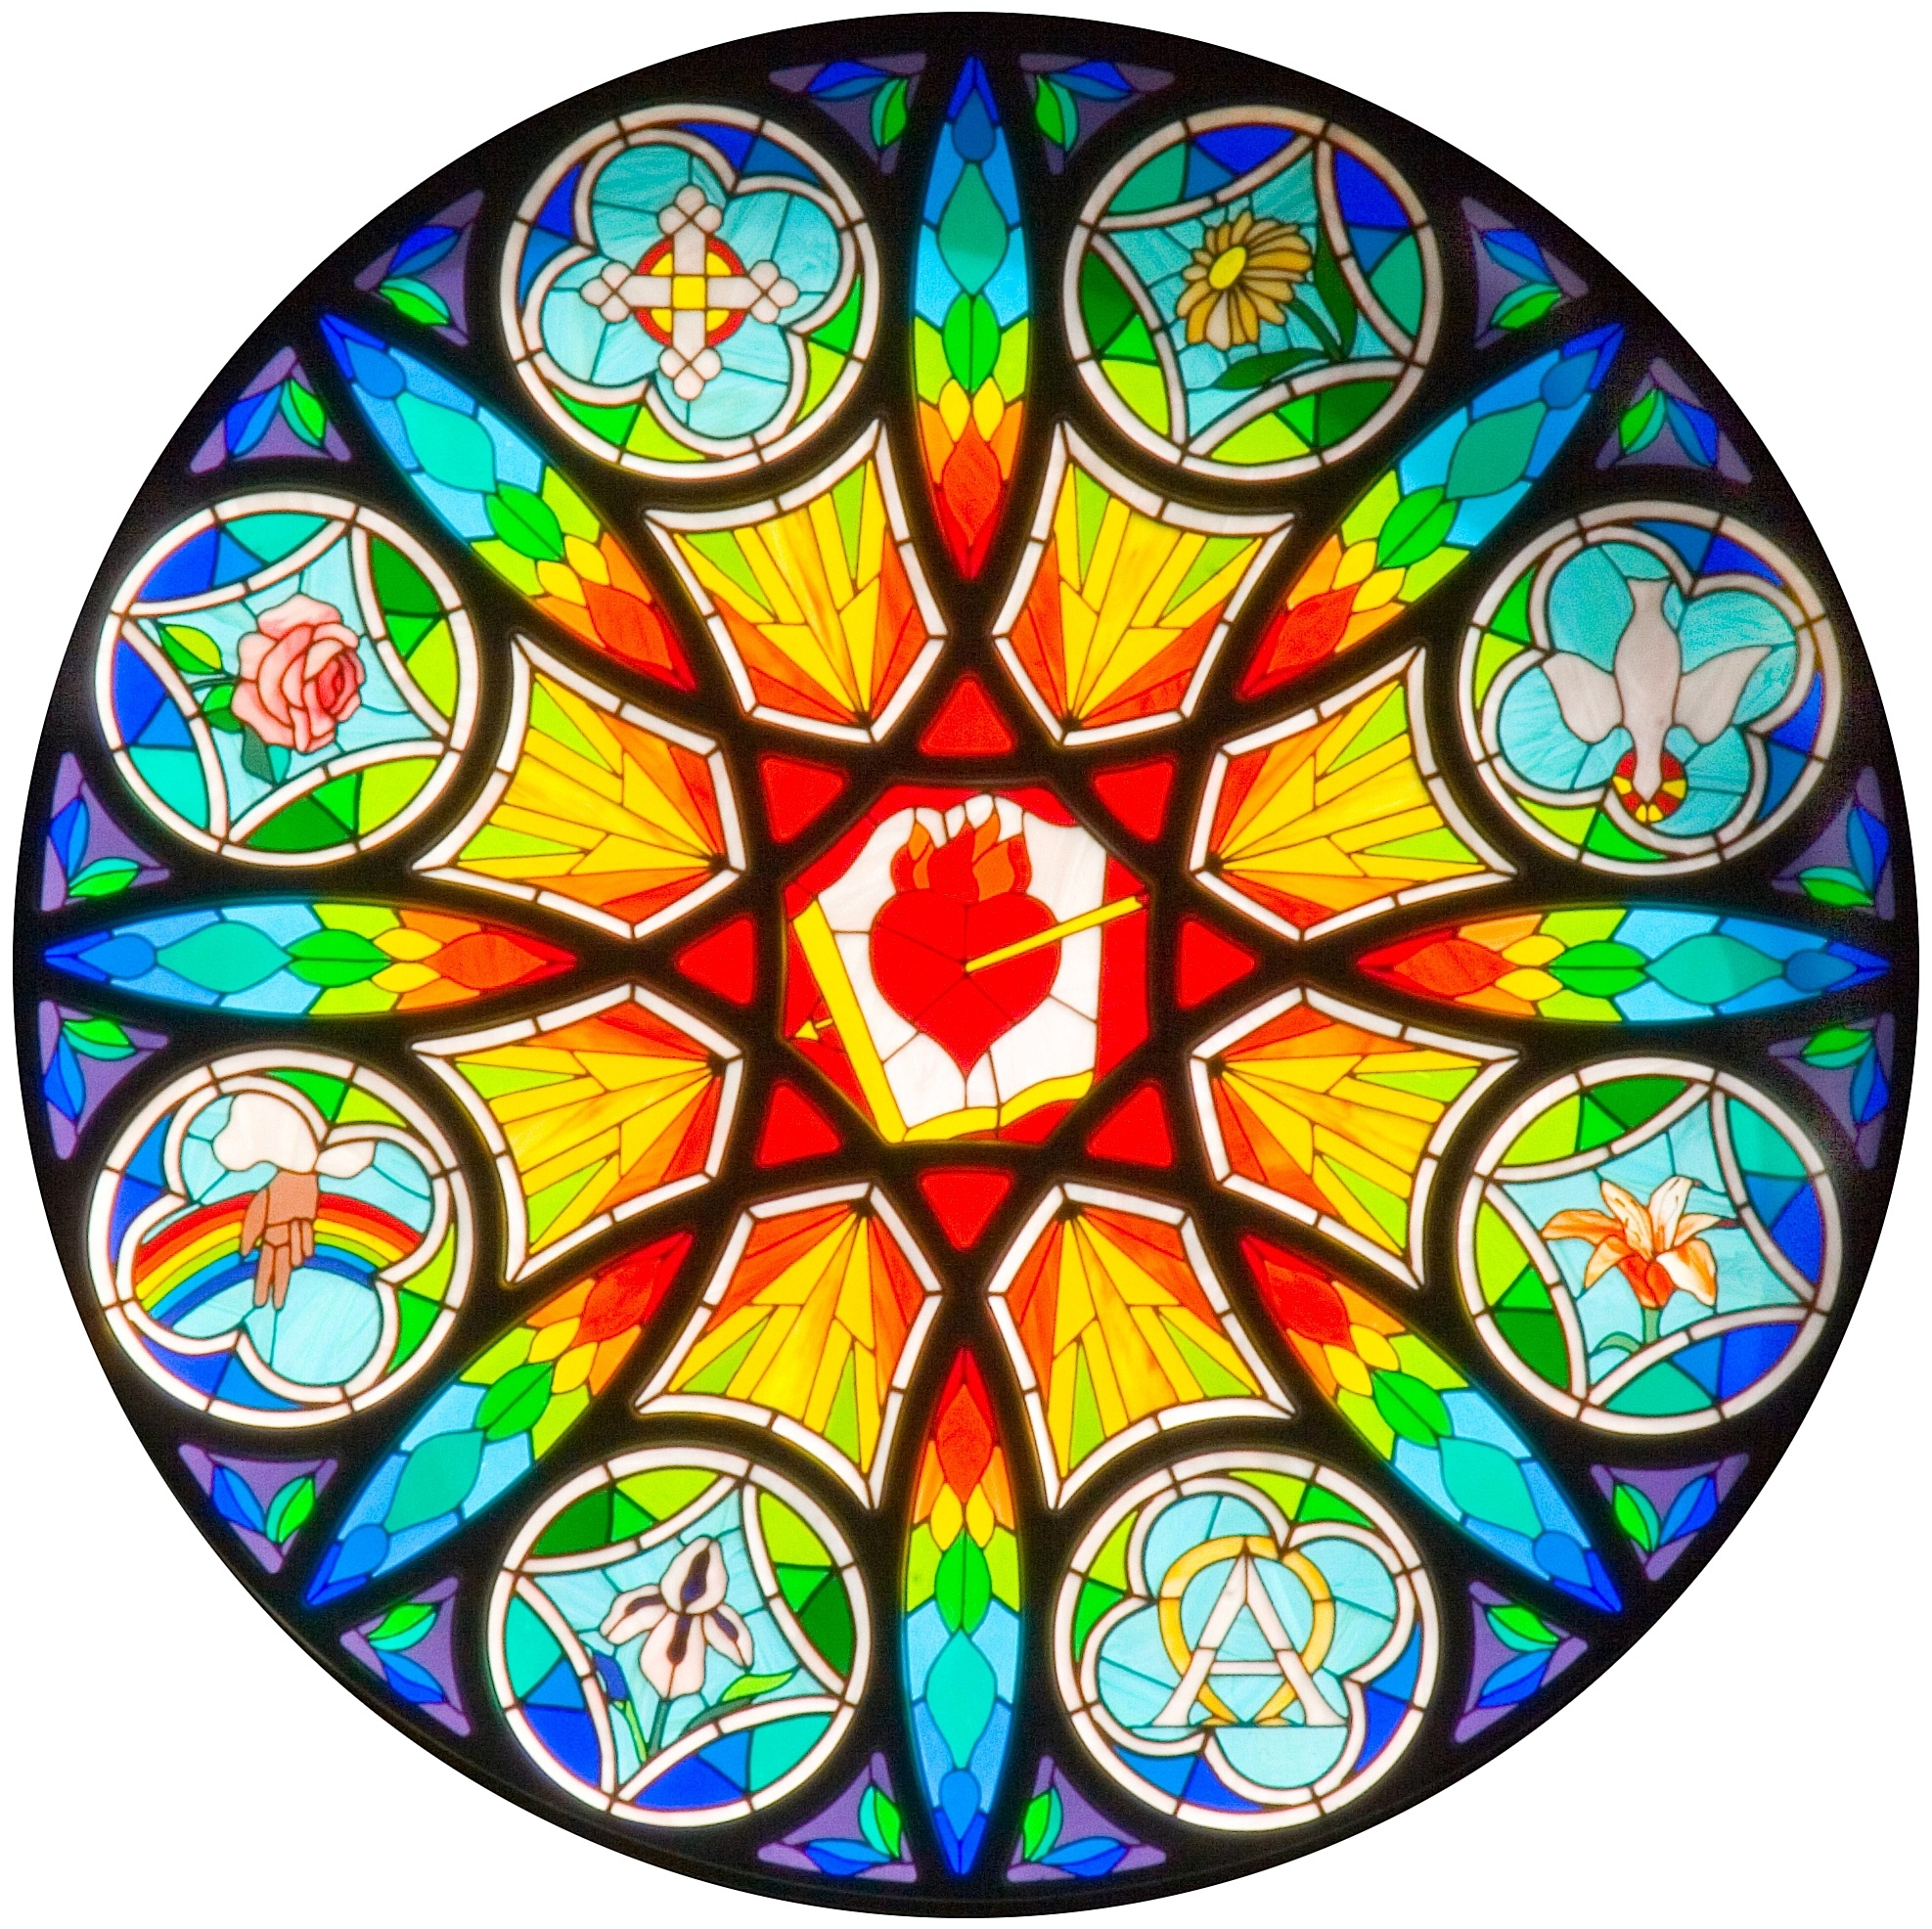 St joseph church rose window st augustine parish for Rose window design